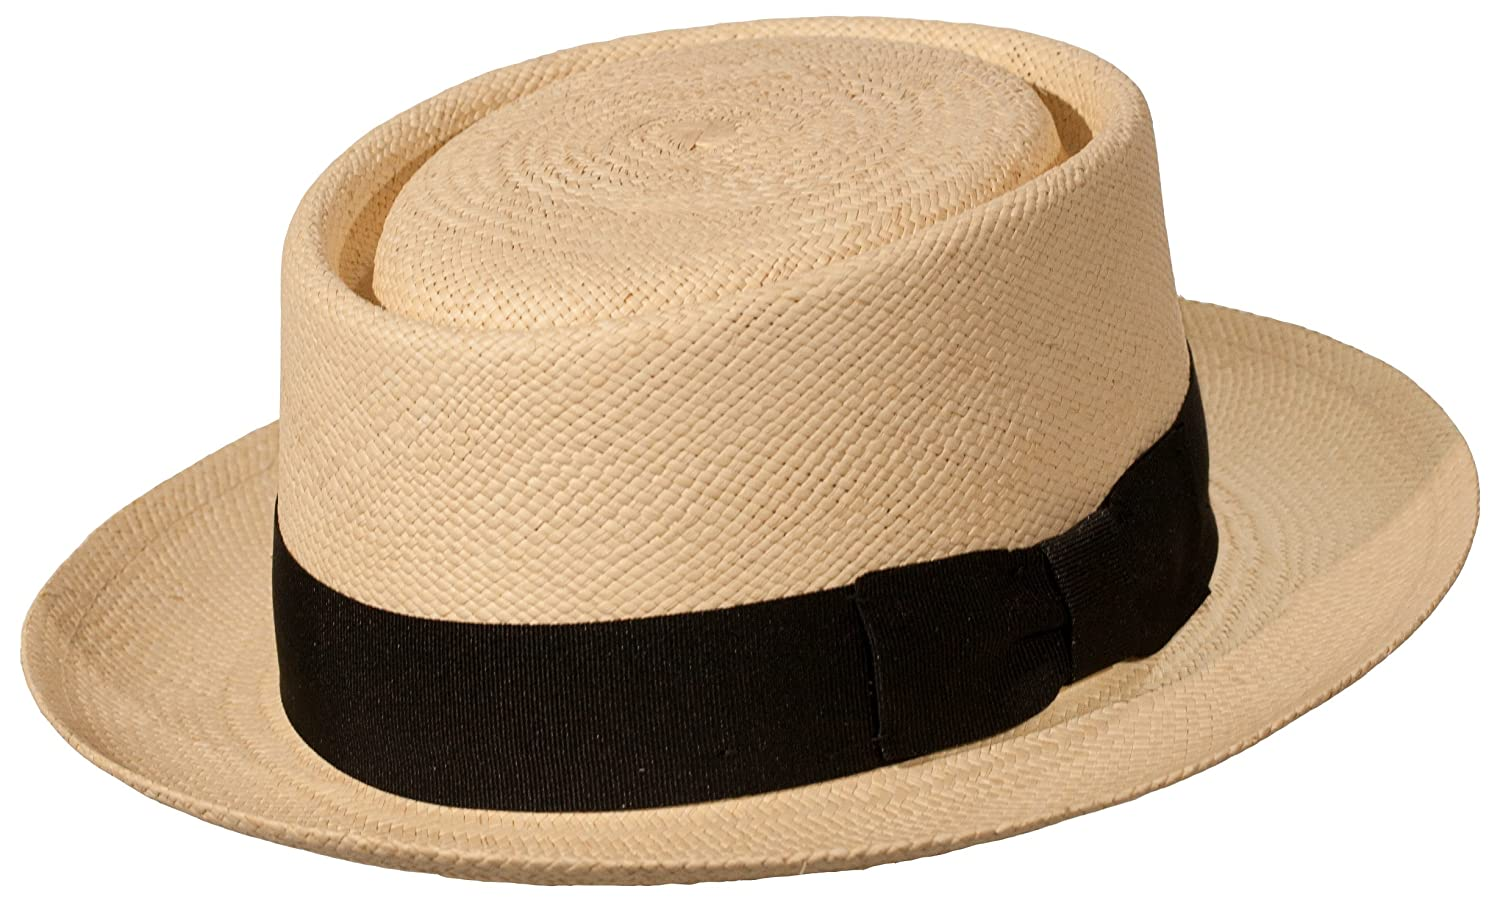 Levine Hat Co. Men's Genuine Panama 'Citizen' Porkpie Hat Natural)